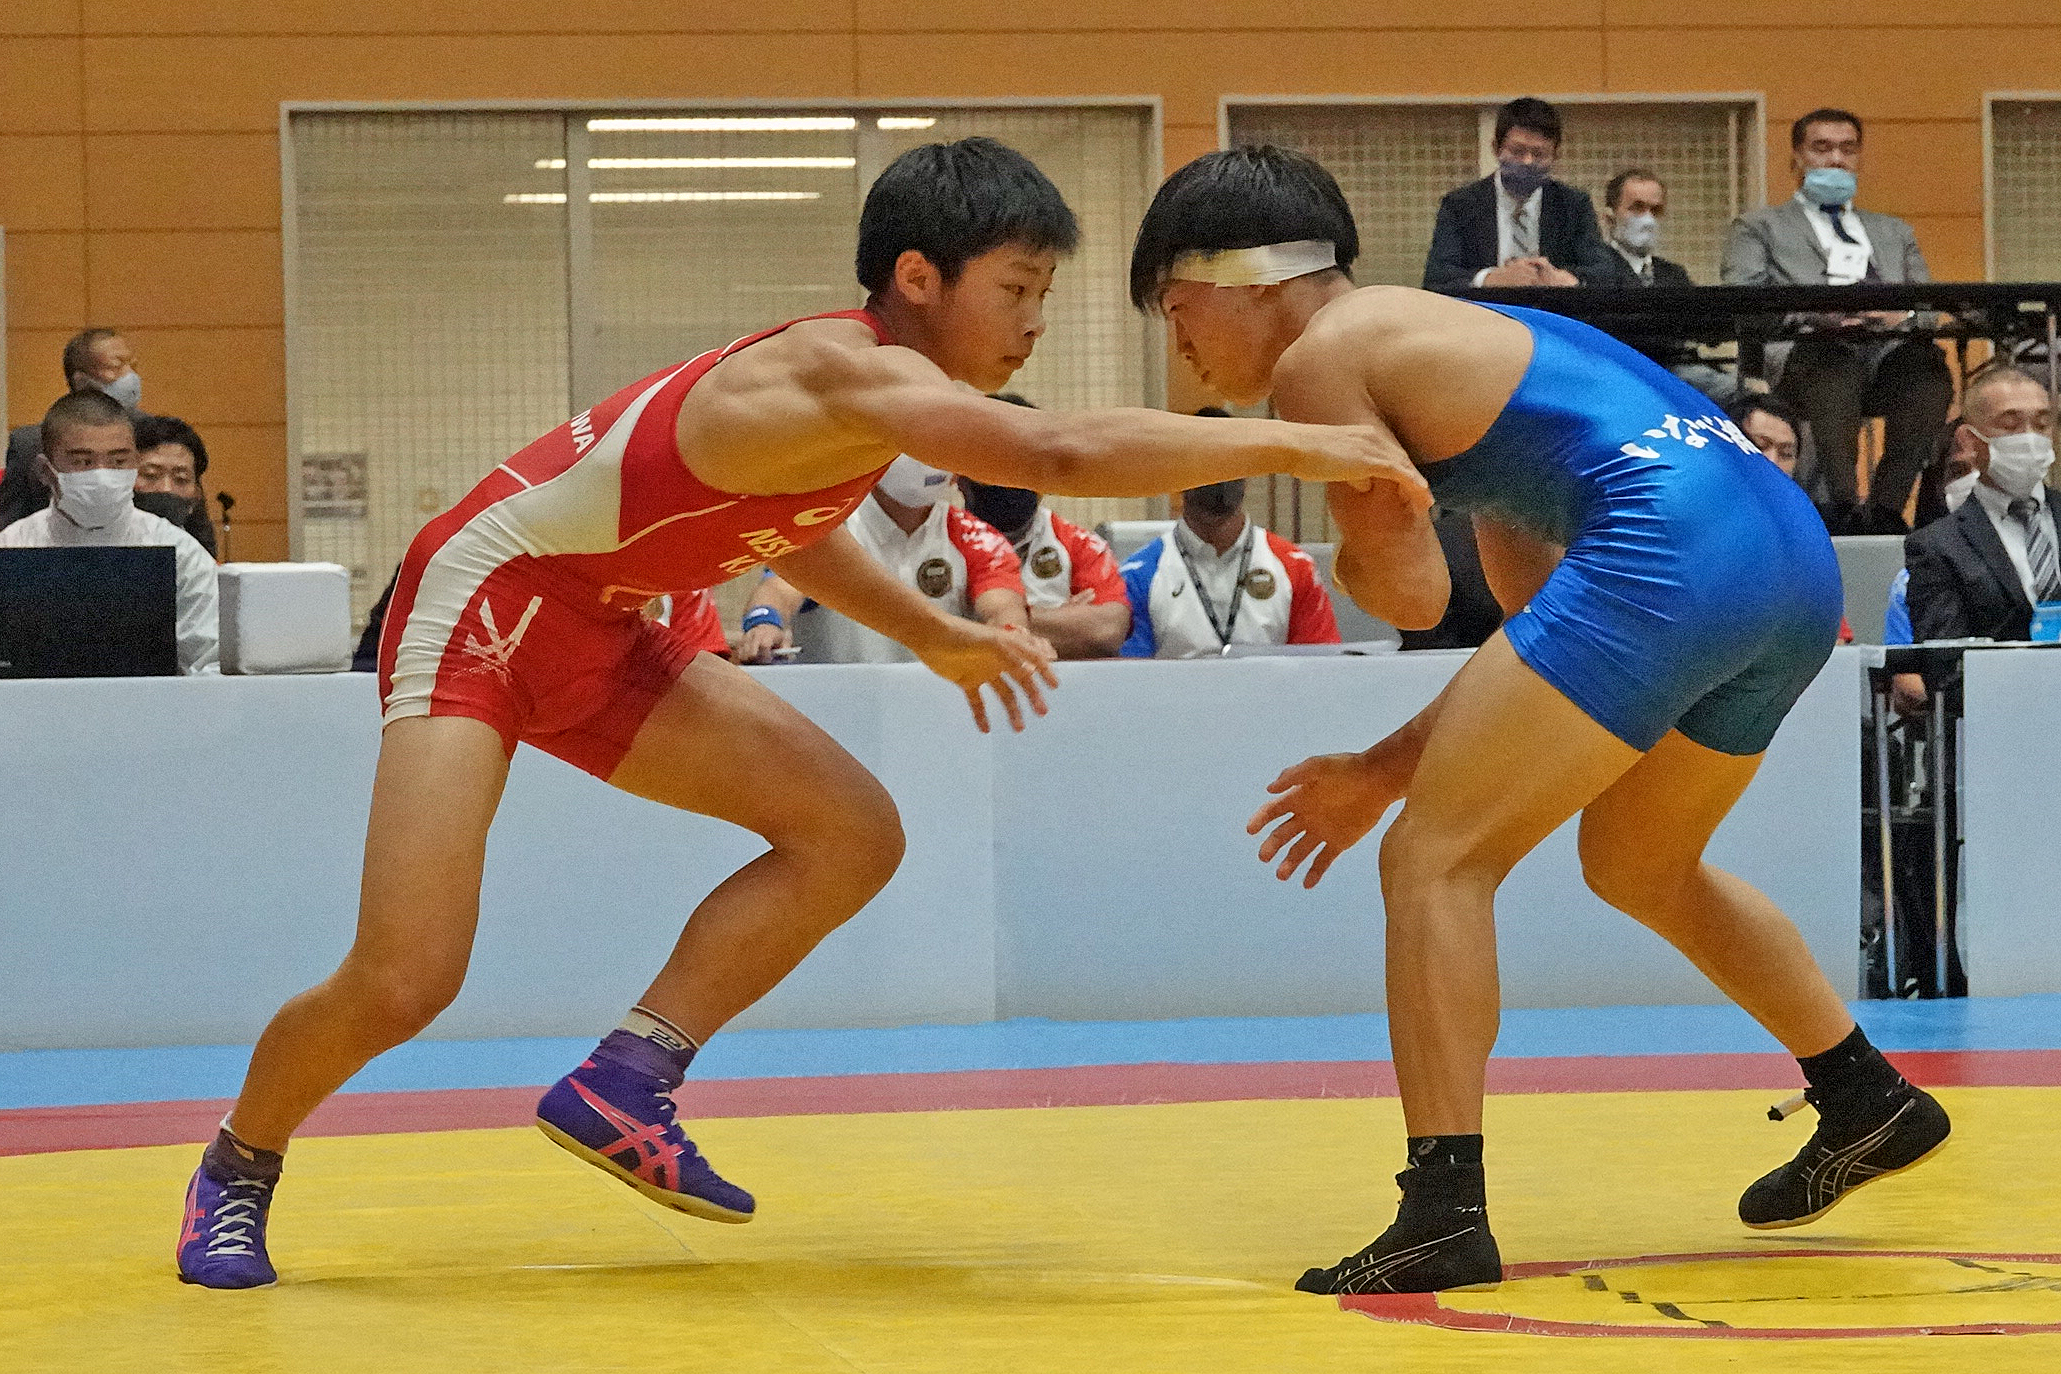 Kaisei TANABE (NSSU Kashiwa), the son of an Olympic medalist, had to settle for the silver after a loss in the 55kg final to Kento YUMIYA (Inabe Sogo Gakuen).  (Japan Wrestling Federation photo)